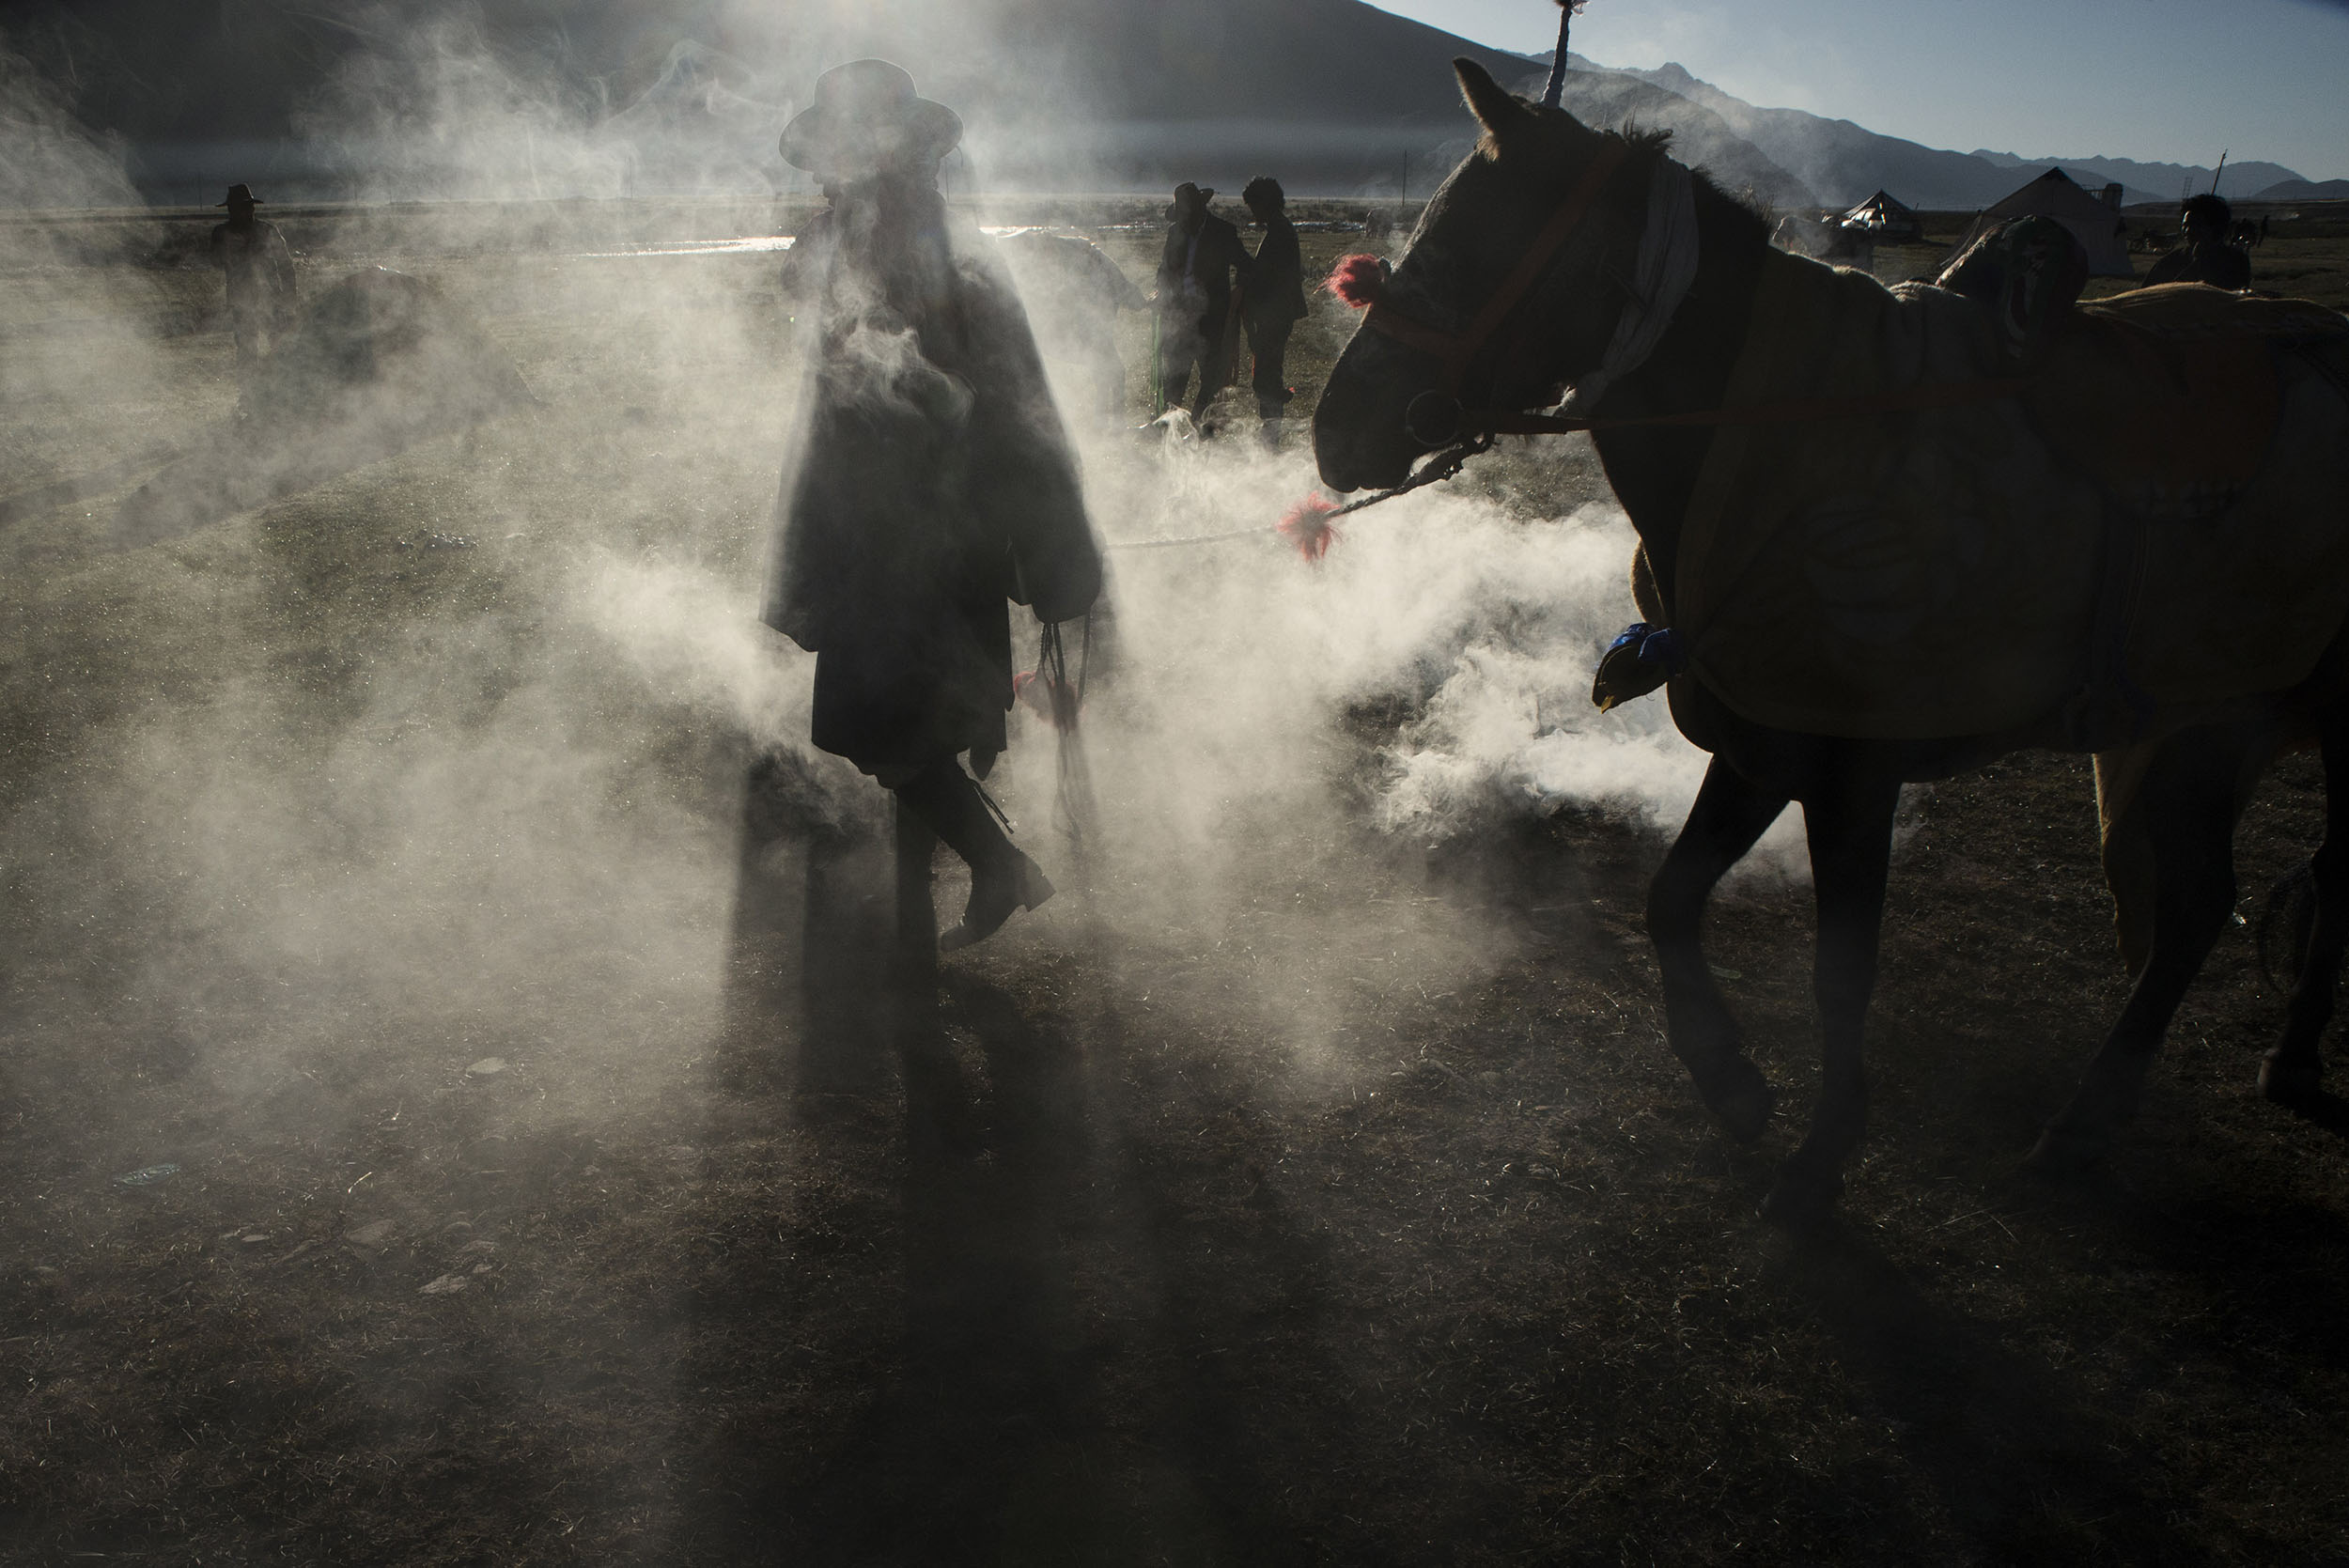 At sunrise, a Tibetan horseman walks his horse through the smoke coming from a juniper fire, a cleansing and strengthening ritual, before taking part in a horse race at Yushu horse festival. Nomadism is a pillar of Tibetan culture. The governement resettlement policy put this culture at risk as thousands of former nomads are forced into a sedentary lifestyle for which they are ill-equipped.